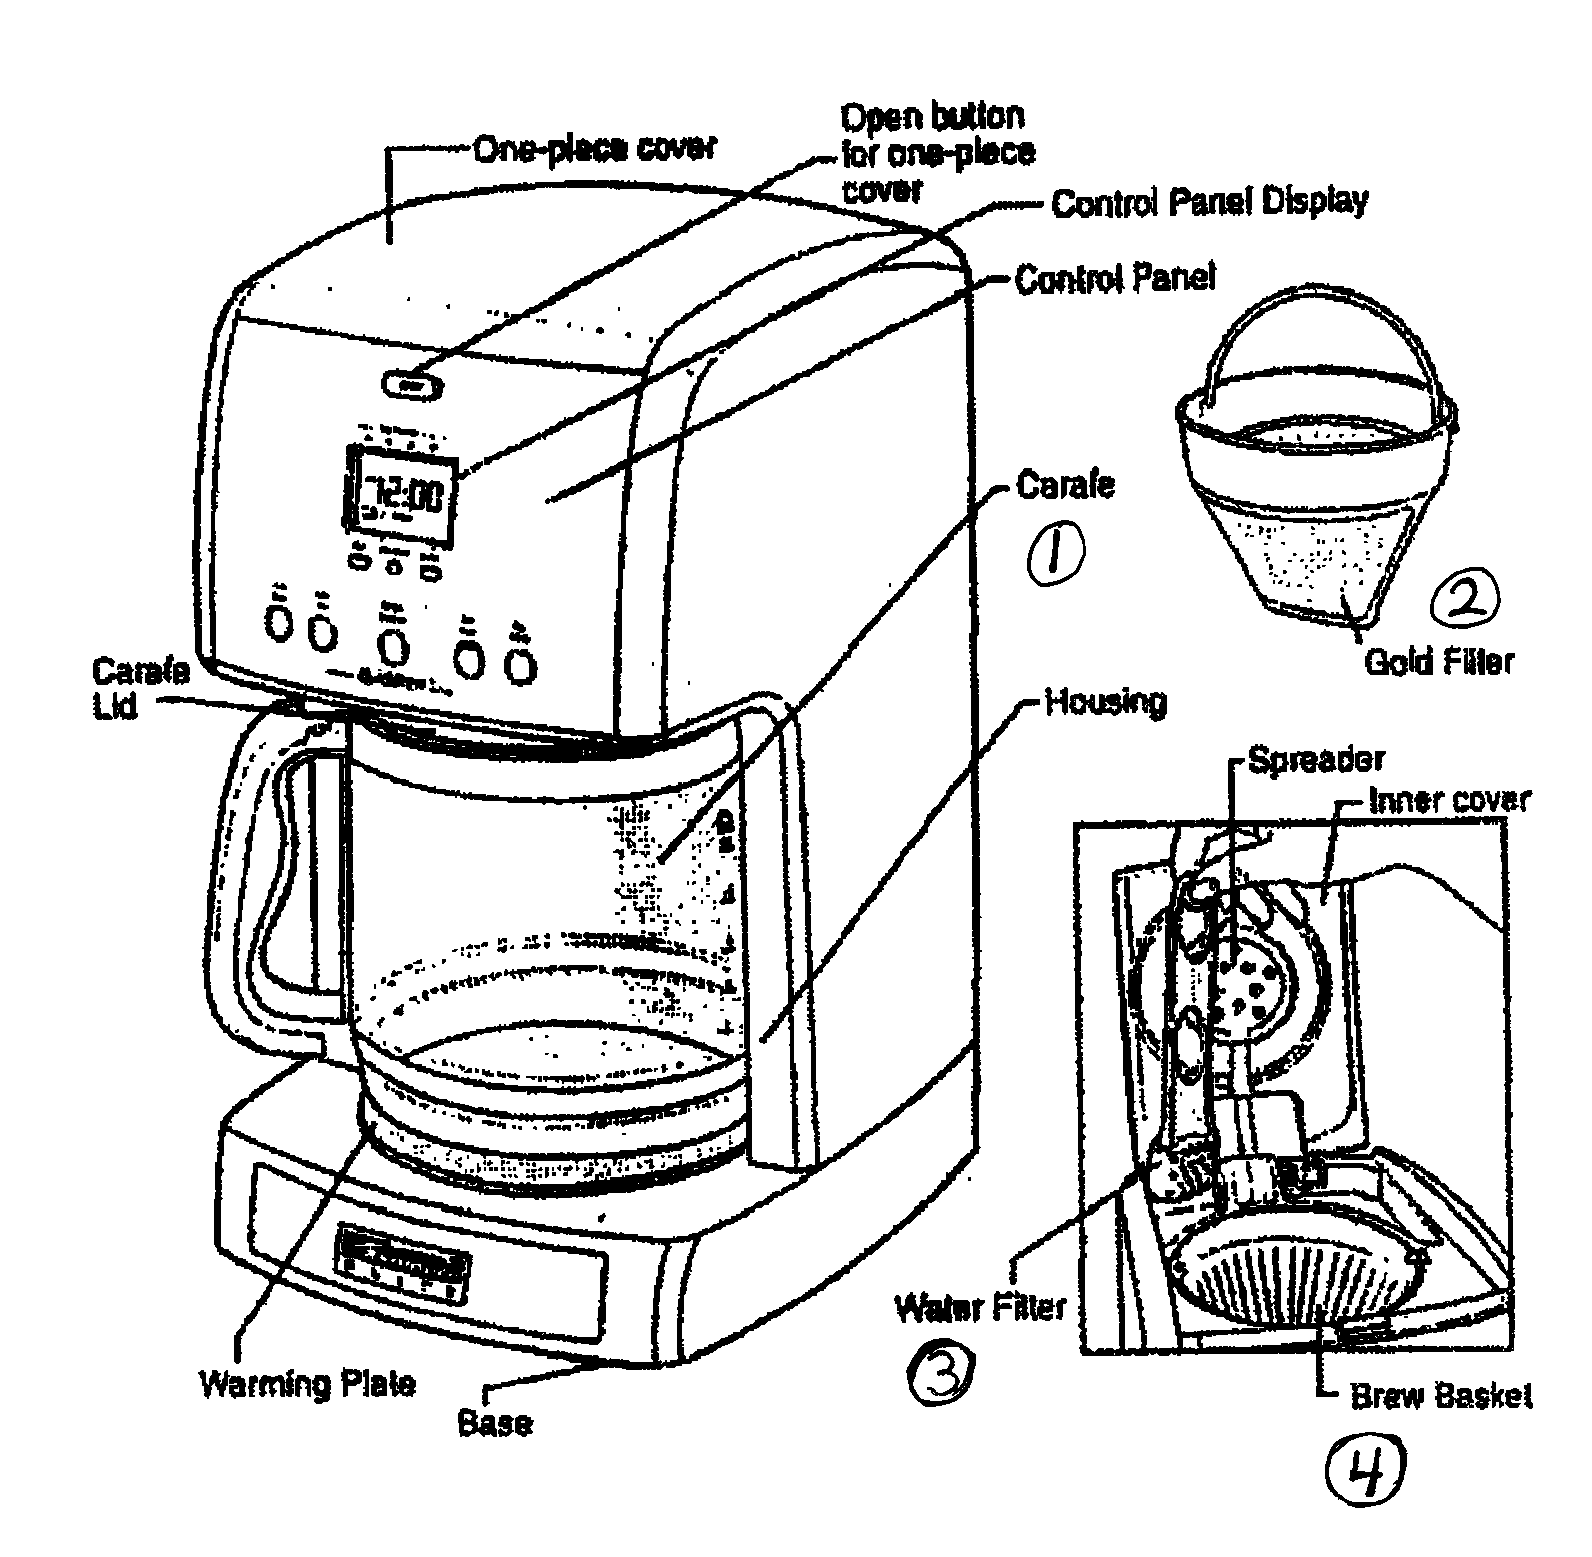 Coffee Maker Drawing At Getdrawings